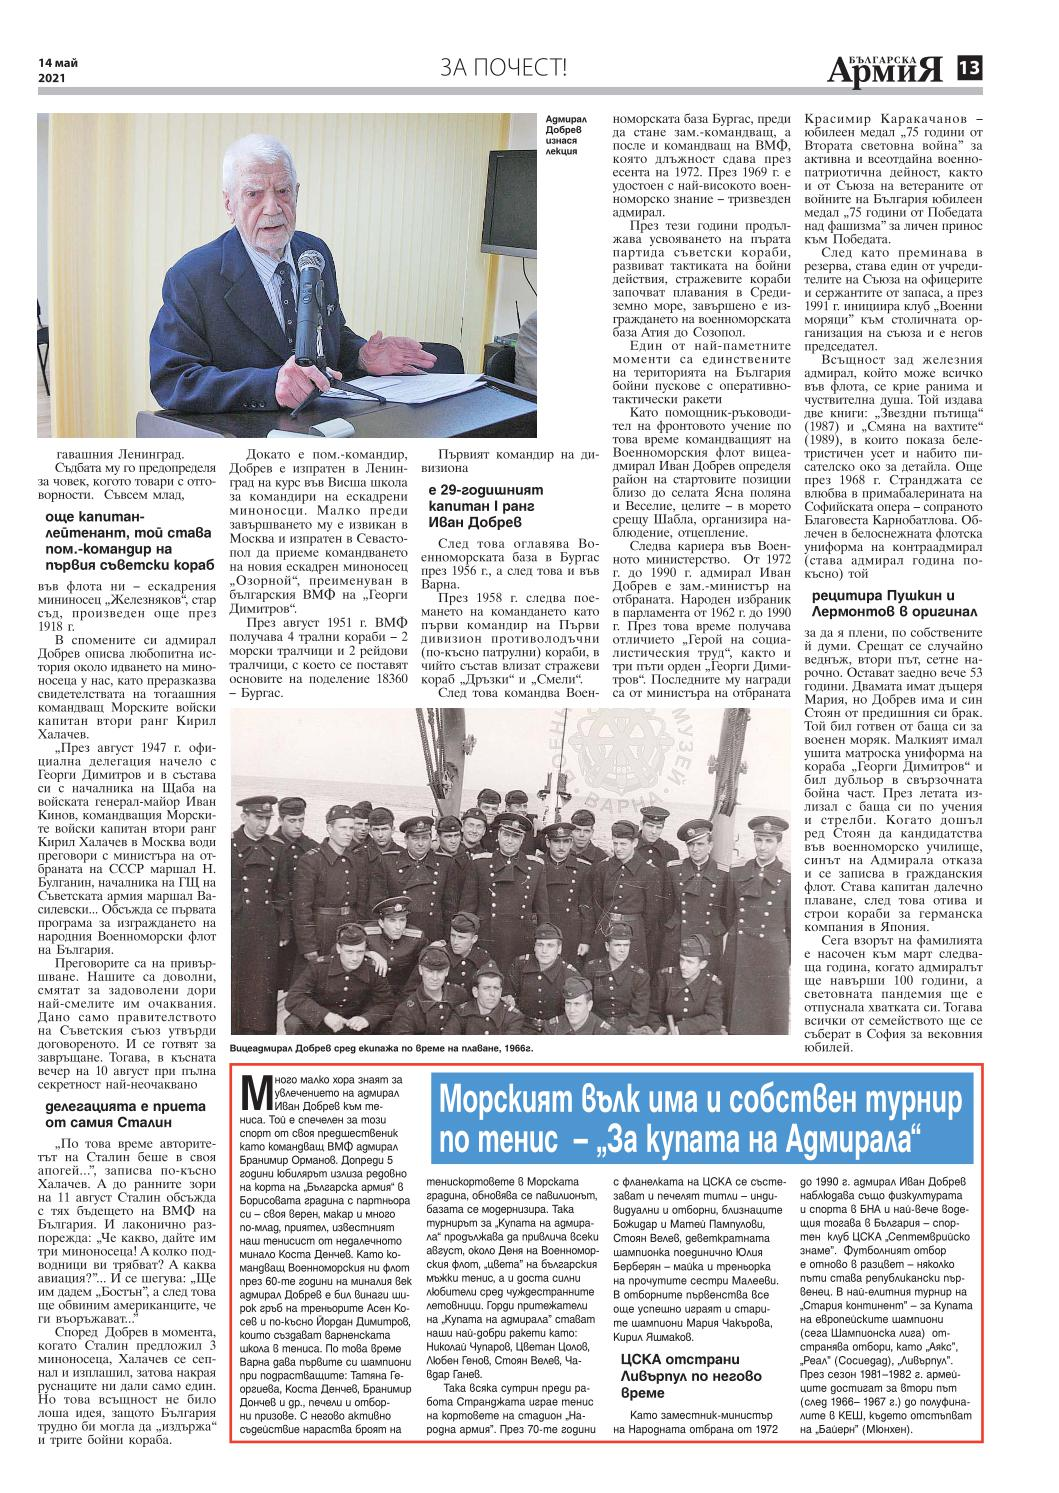 https://armymedia.bg/wp-content/uploads/2021/05/13.page1_-1.jpg